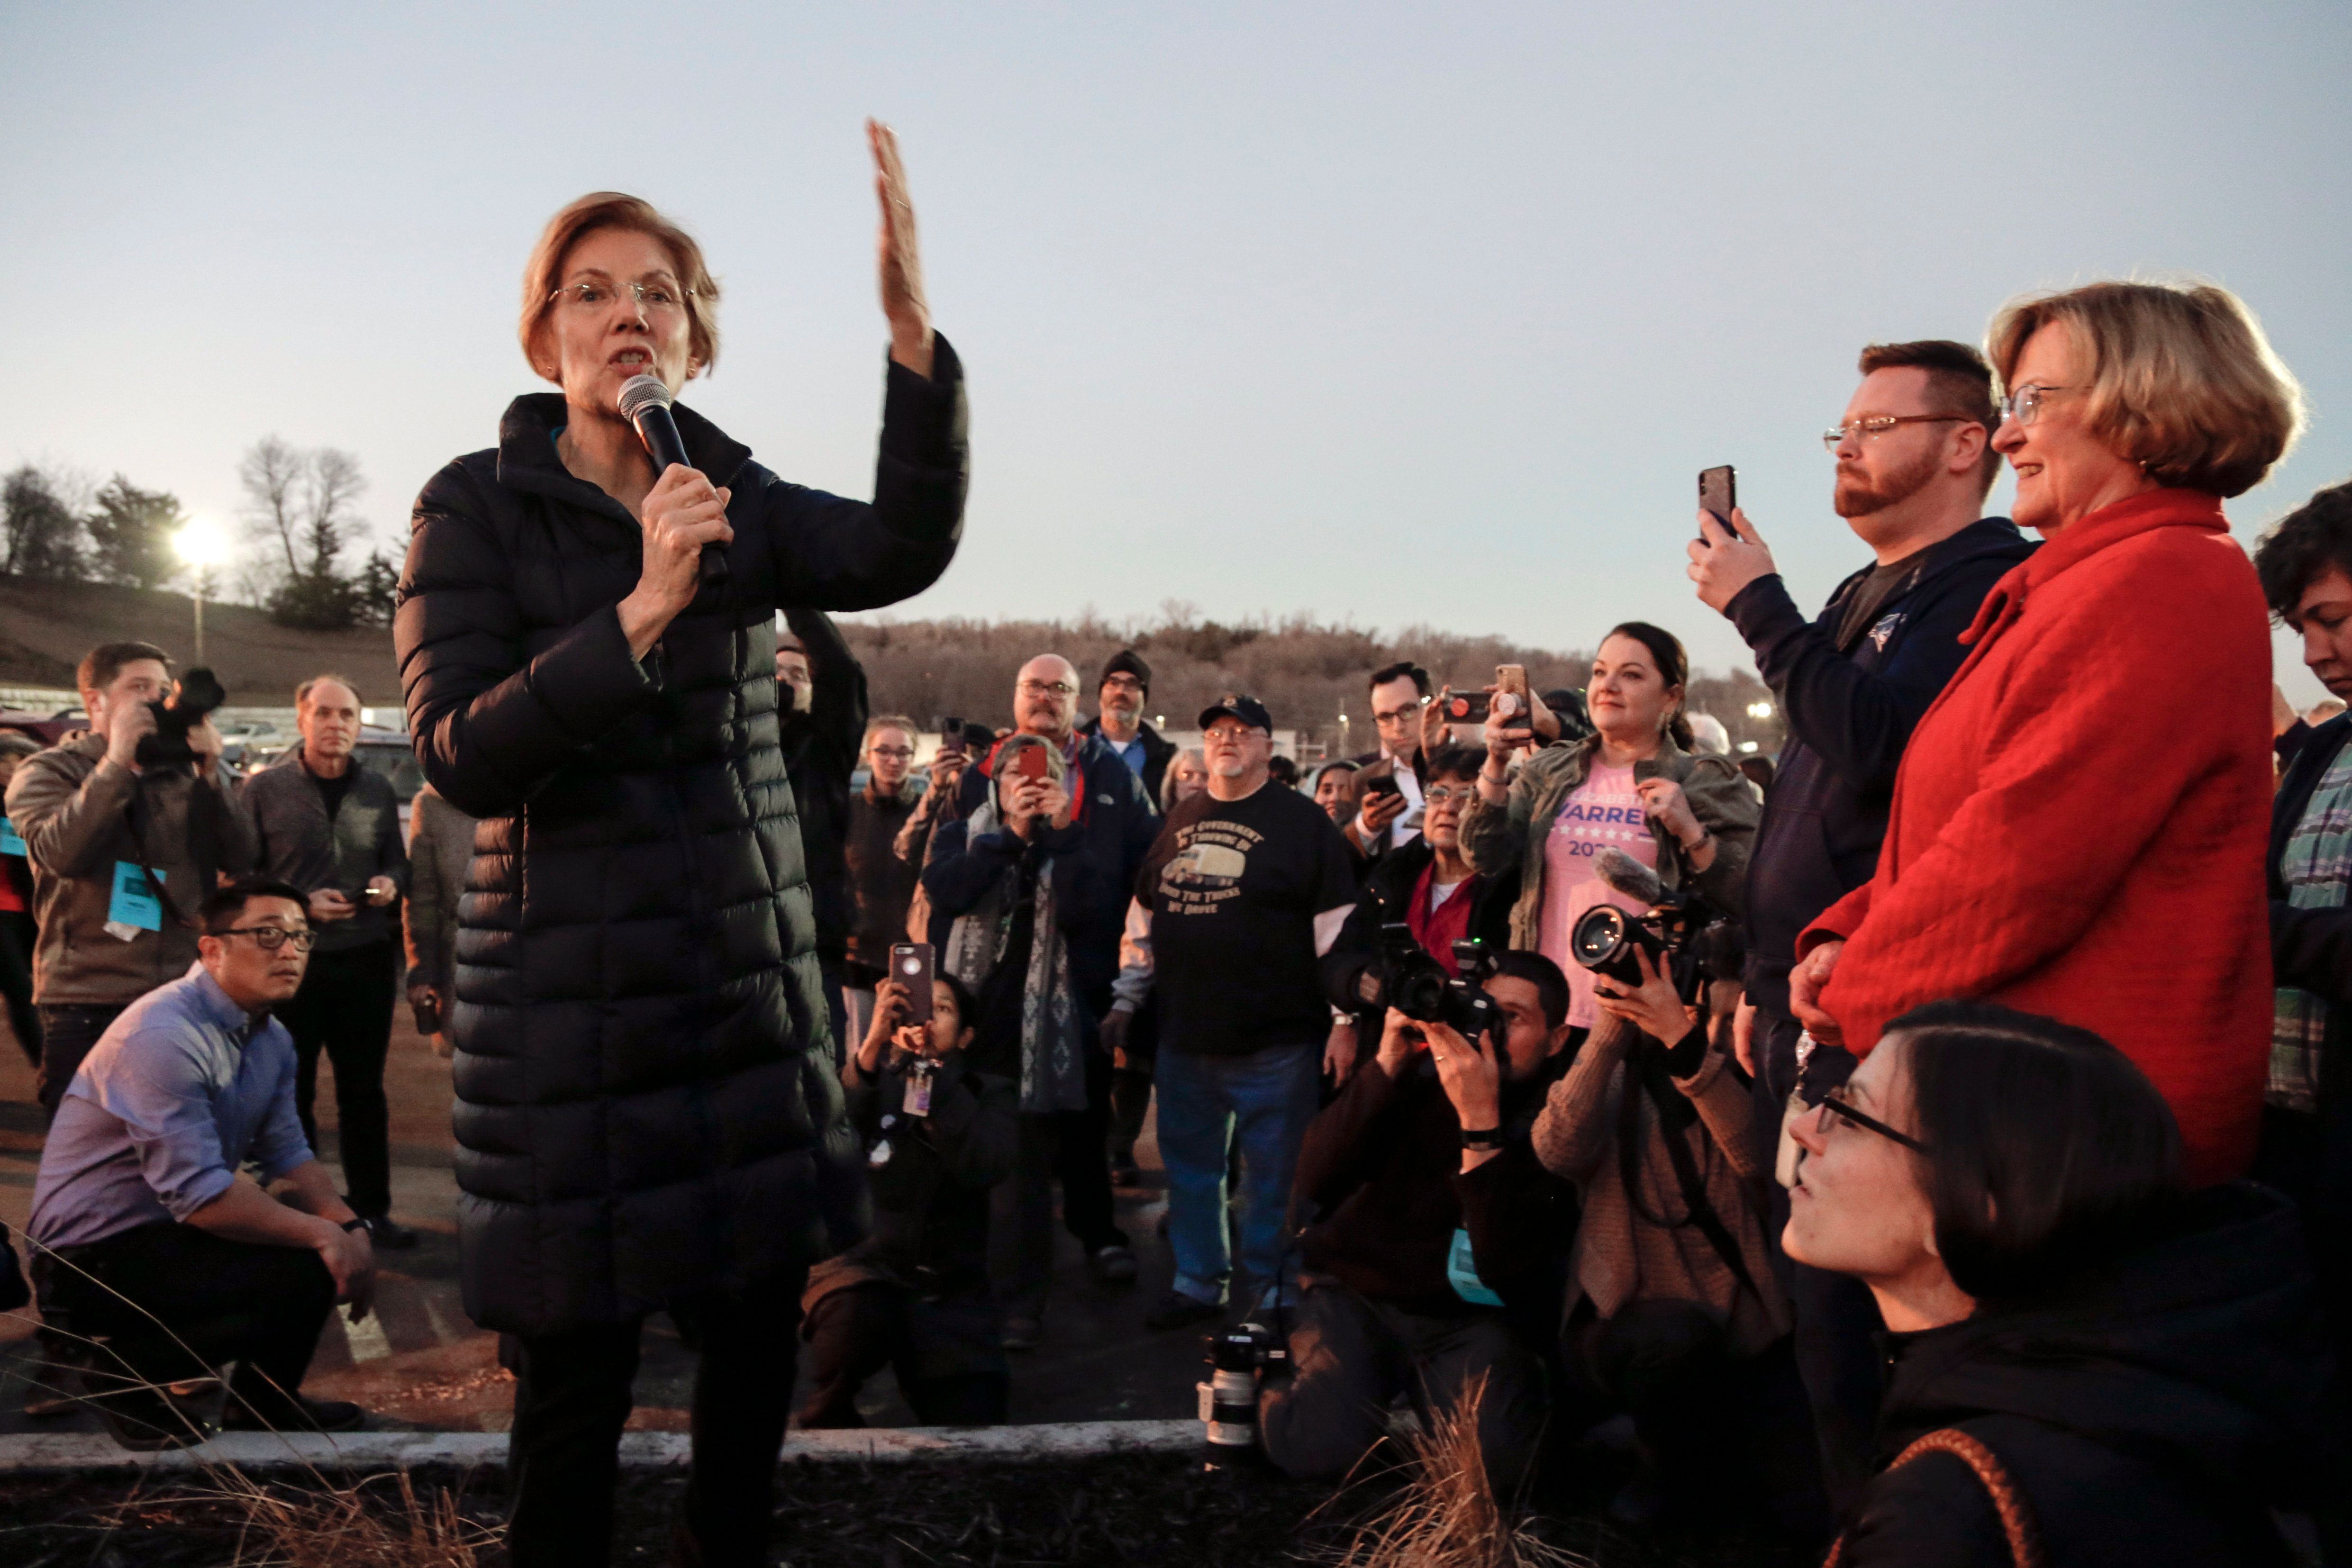 Massachusetts Sen. Elizabeth Warren made her first stop of the 2018 campaign in Council Bluffs, Iowa.